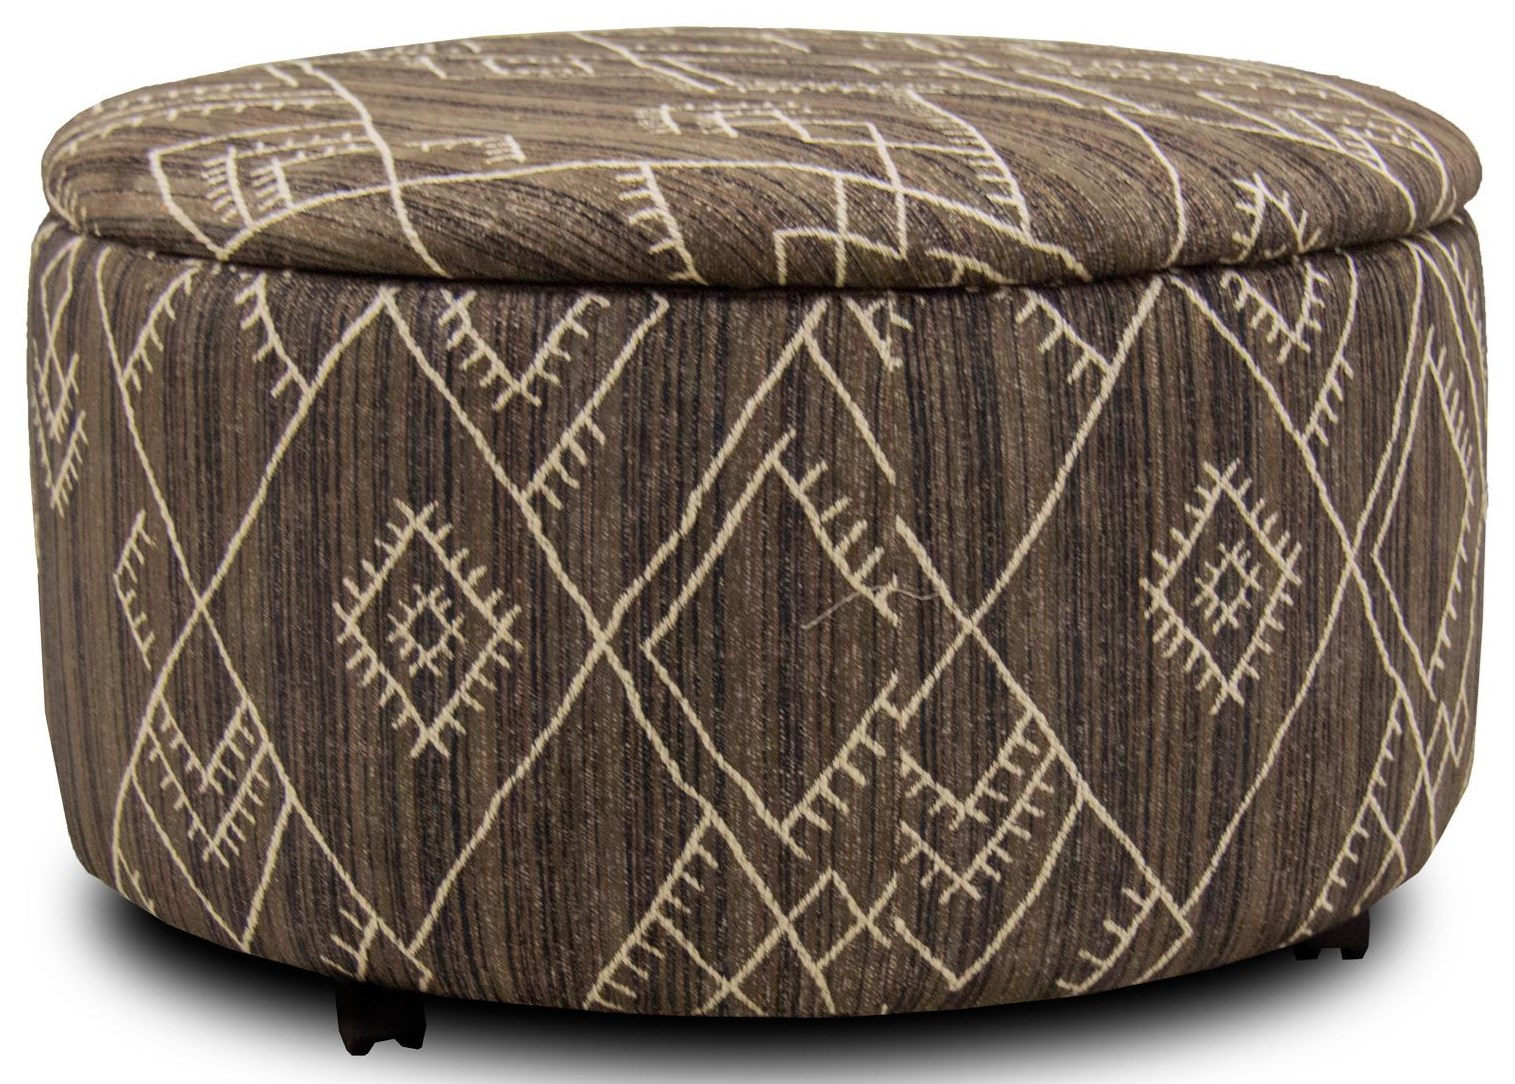 Corinthian Alton Judaculla Round Storage Ottoman with Casters - Item Number: AO2429D